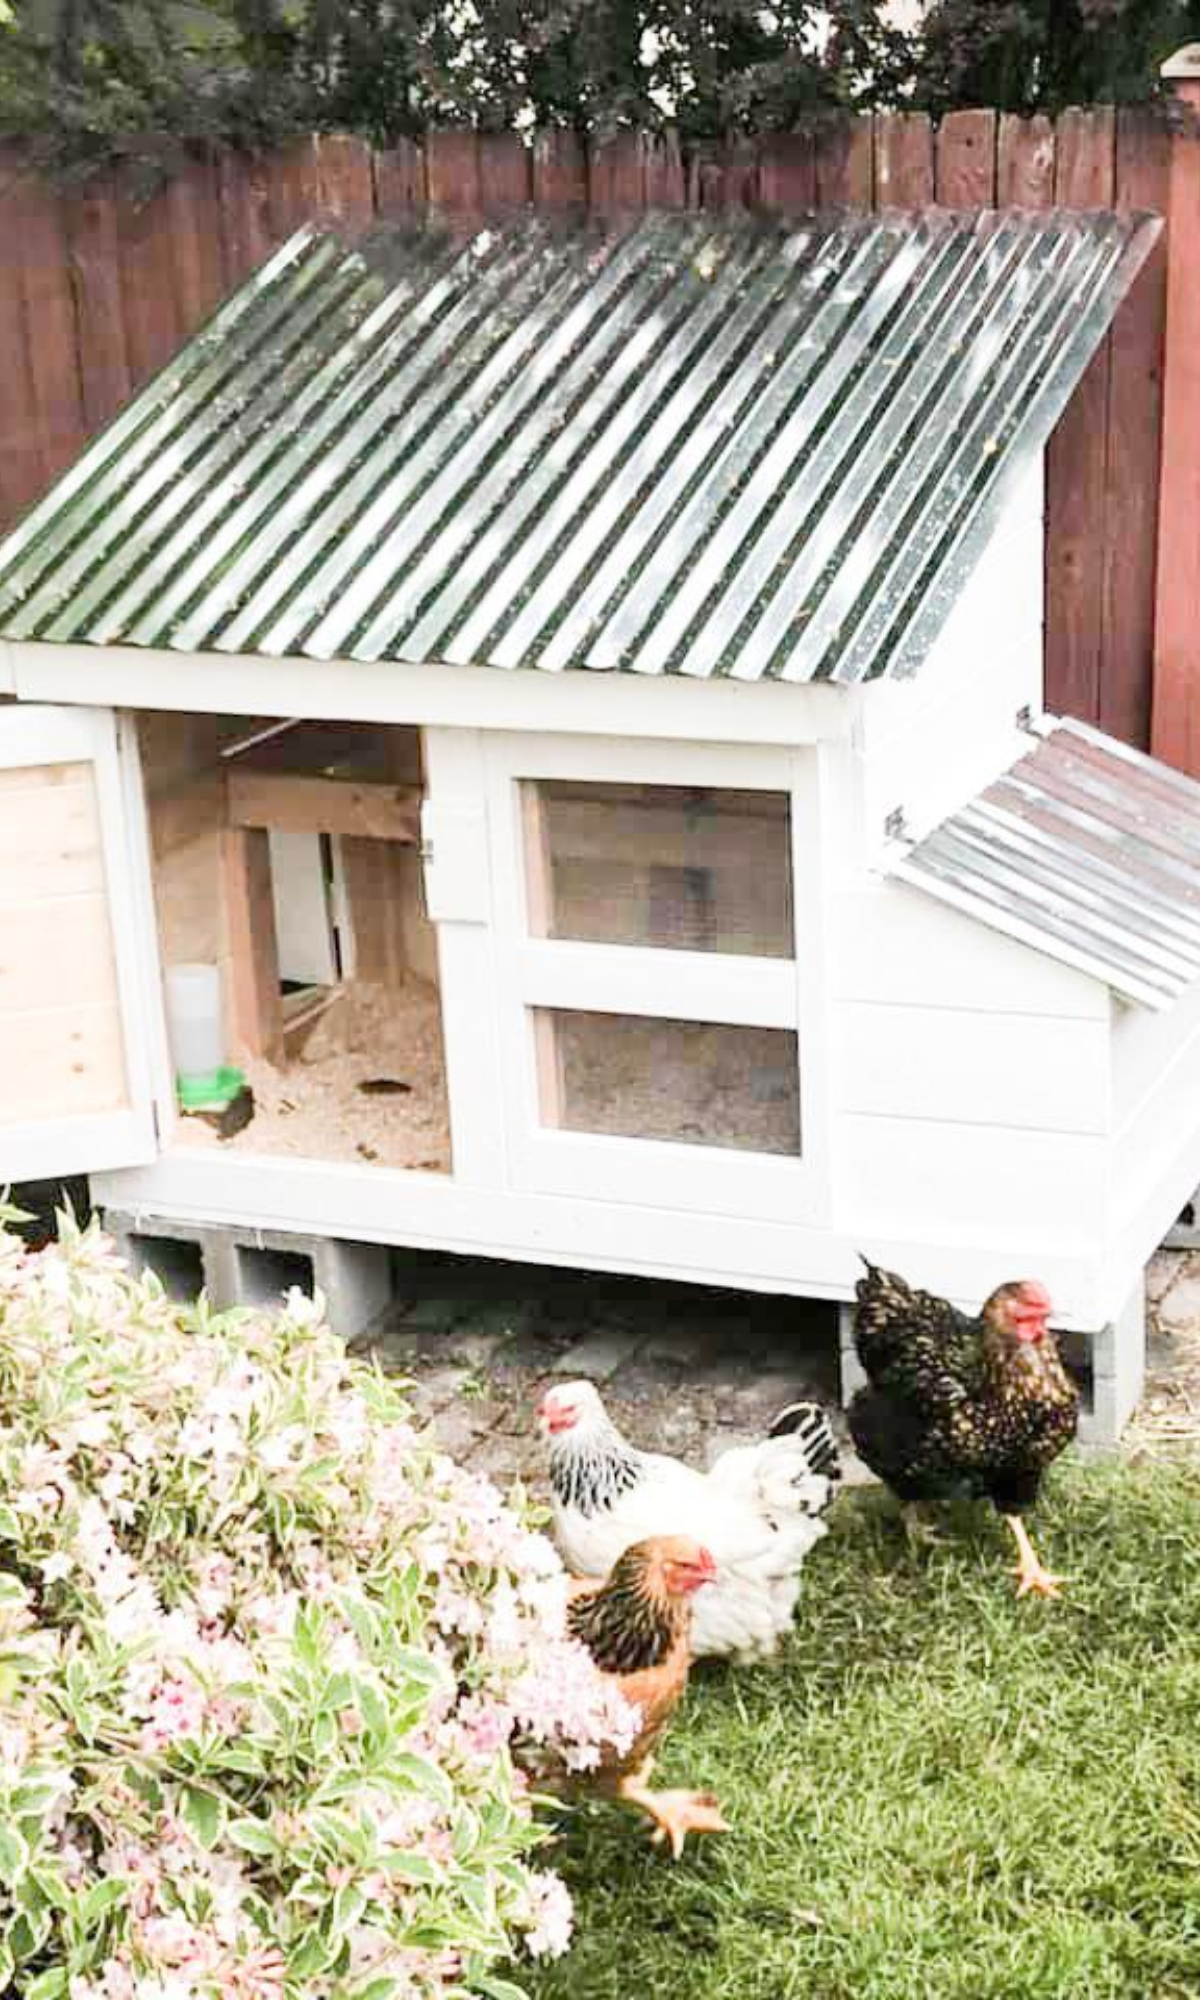 3 how to build a chicken coop easy DIY chicken coop small flock backyard chicken keeping for beginners